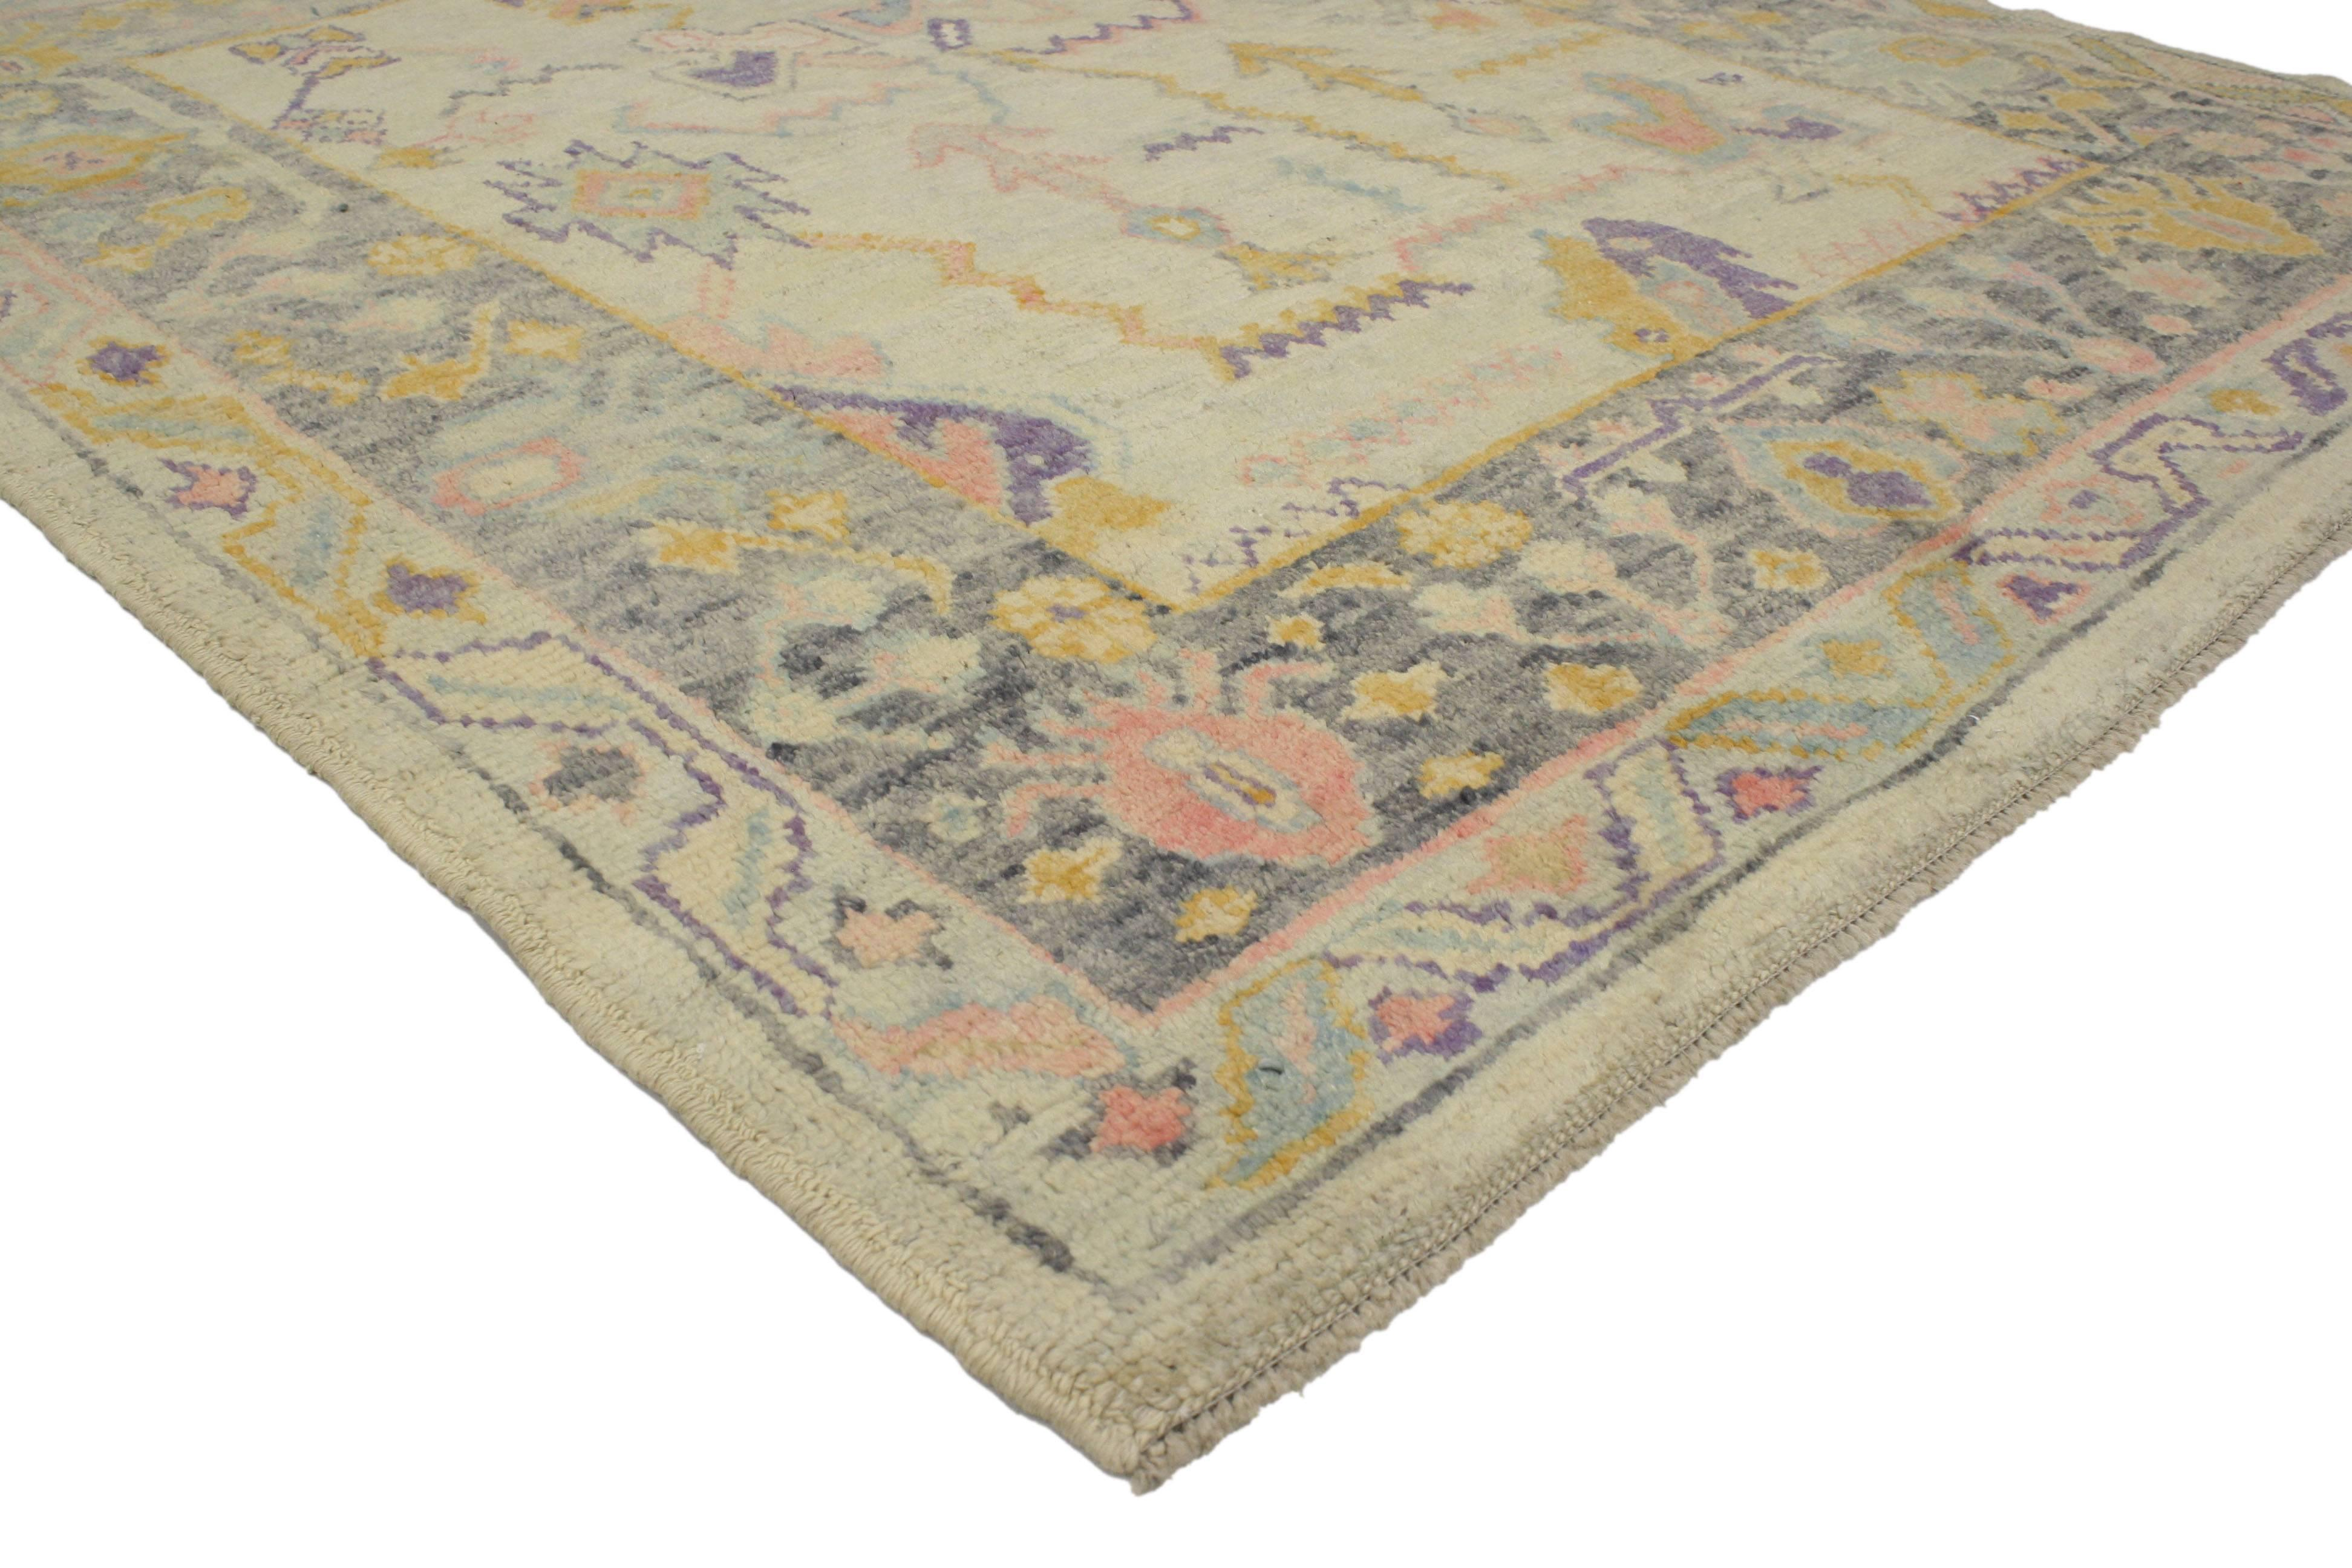 Contemporary Turkish Oushak Rug In Pastel Colors With